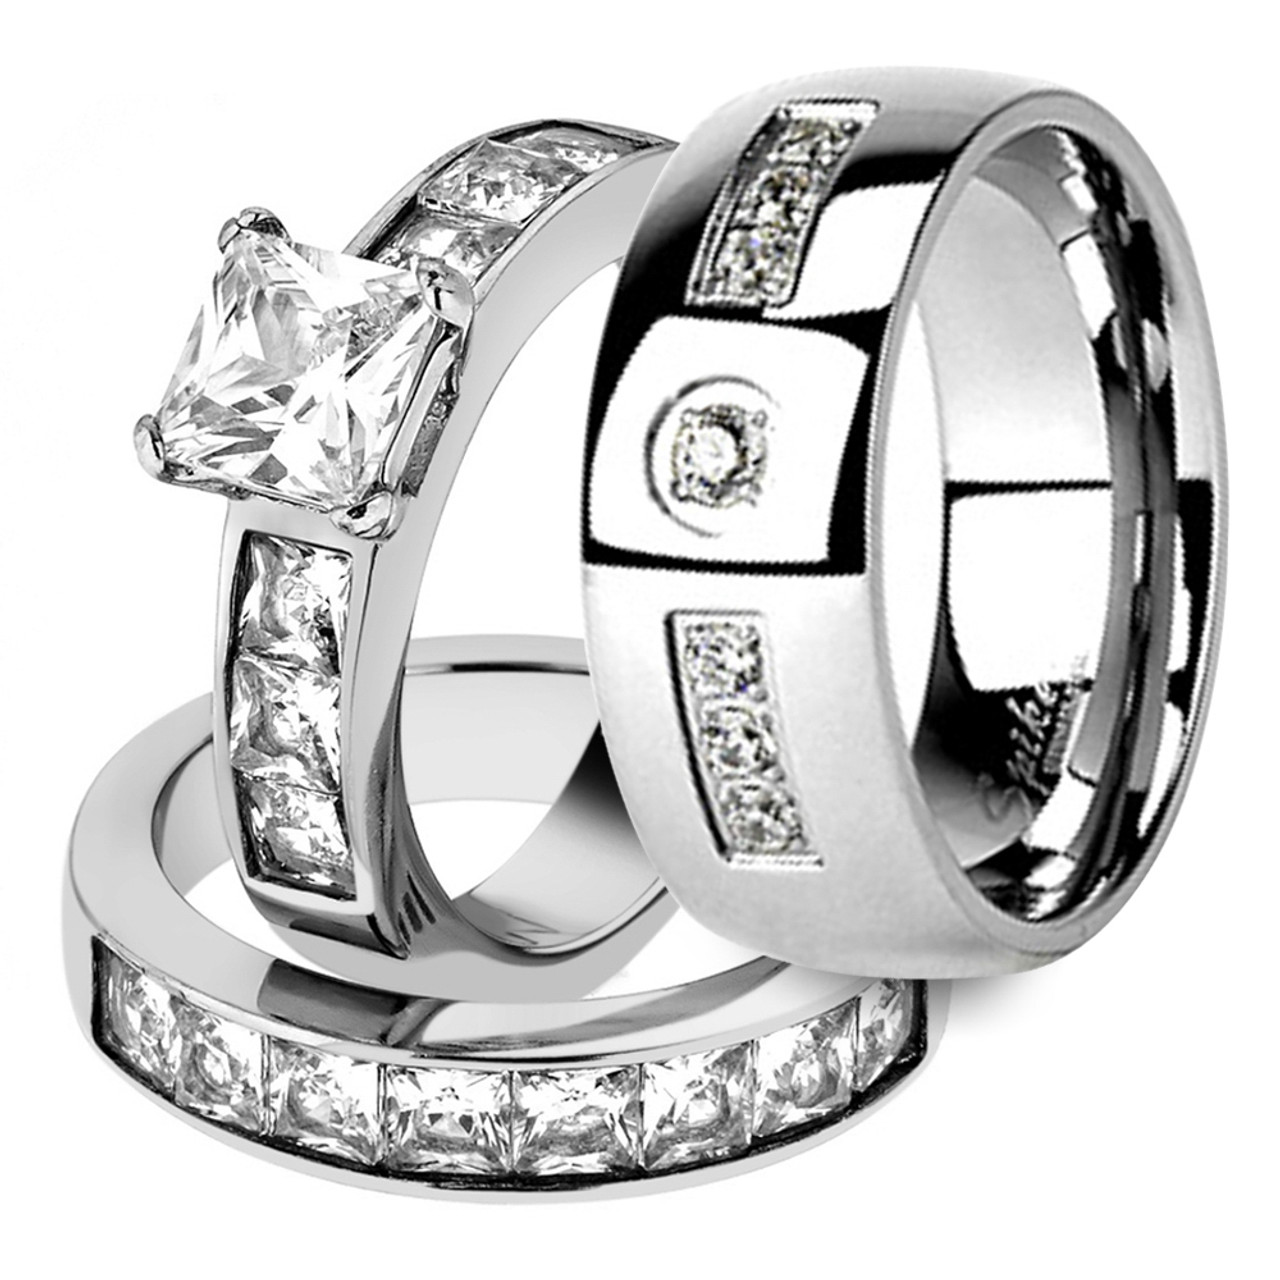 Ring Diamond Black Engagement Round Wedding Certified Grade Bridal 2.10 Ct Aaa Grade Products According To Quality Fine Jewelry Fine Rings